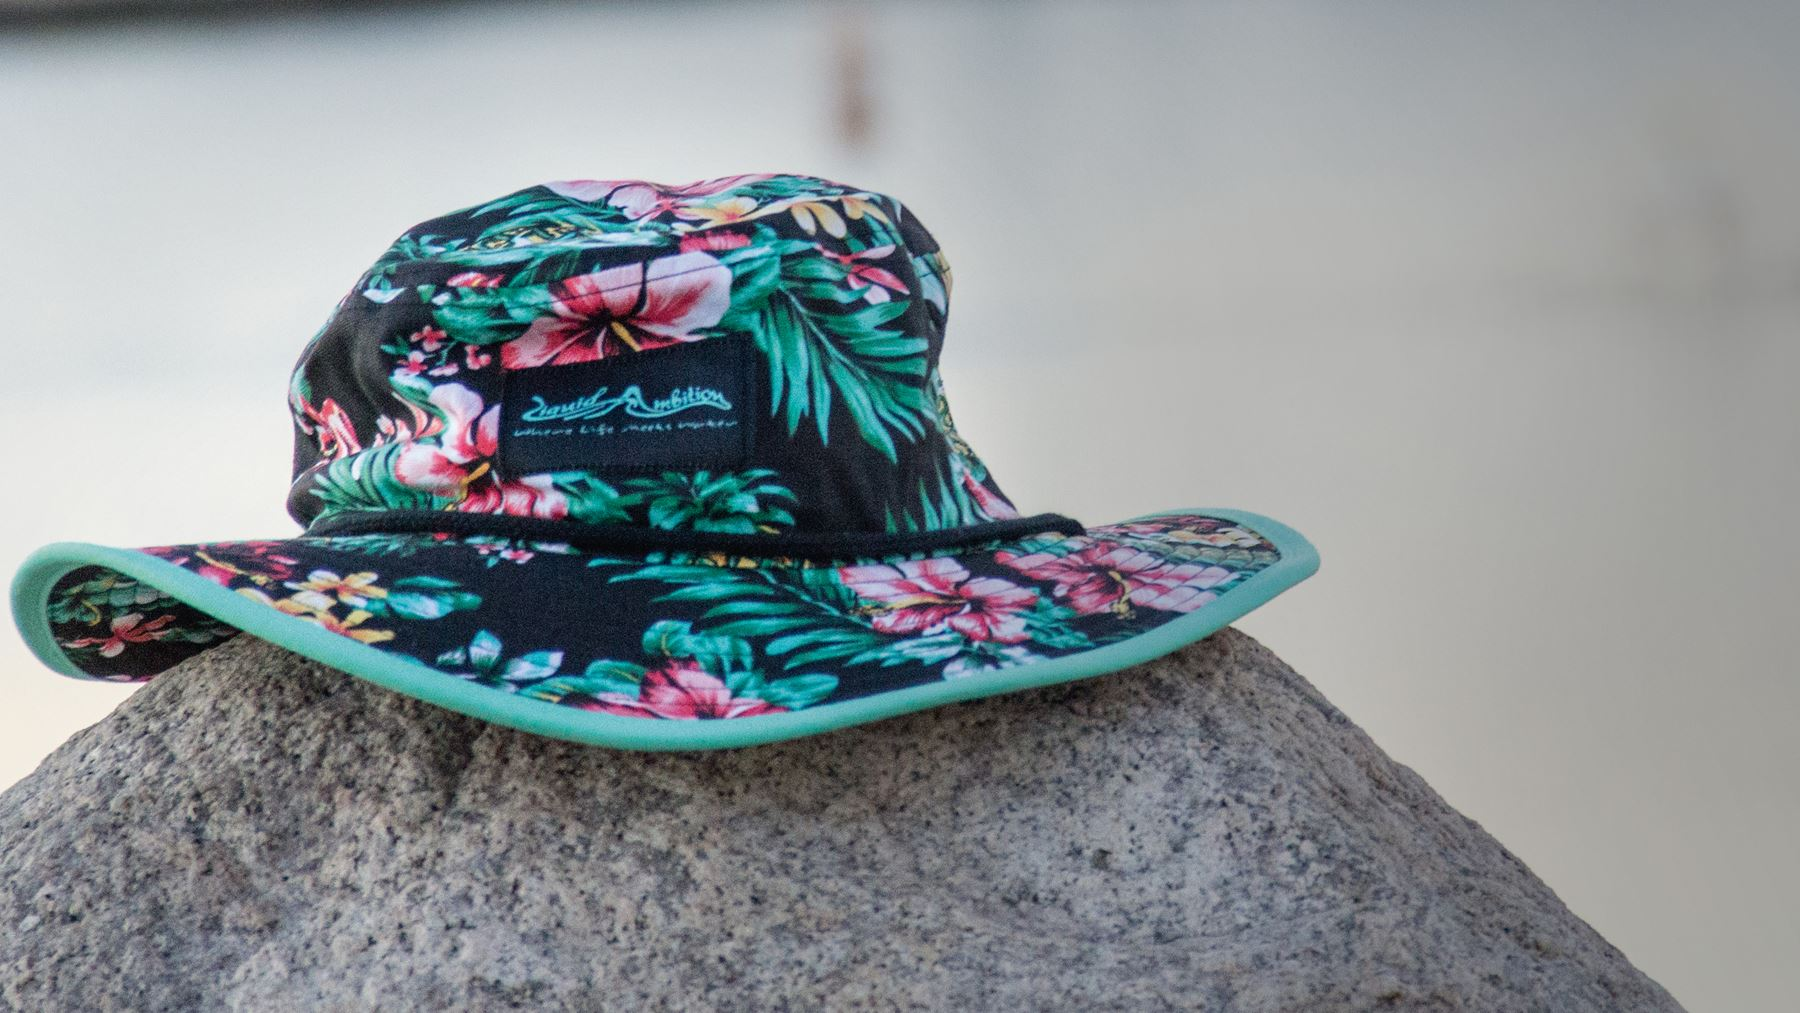 Boonie bucket hat sitting on large rock